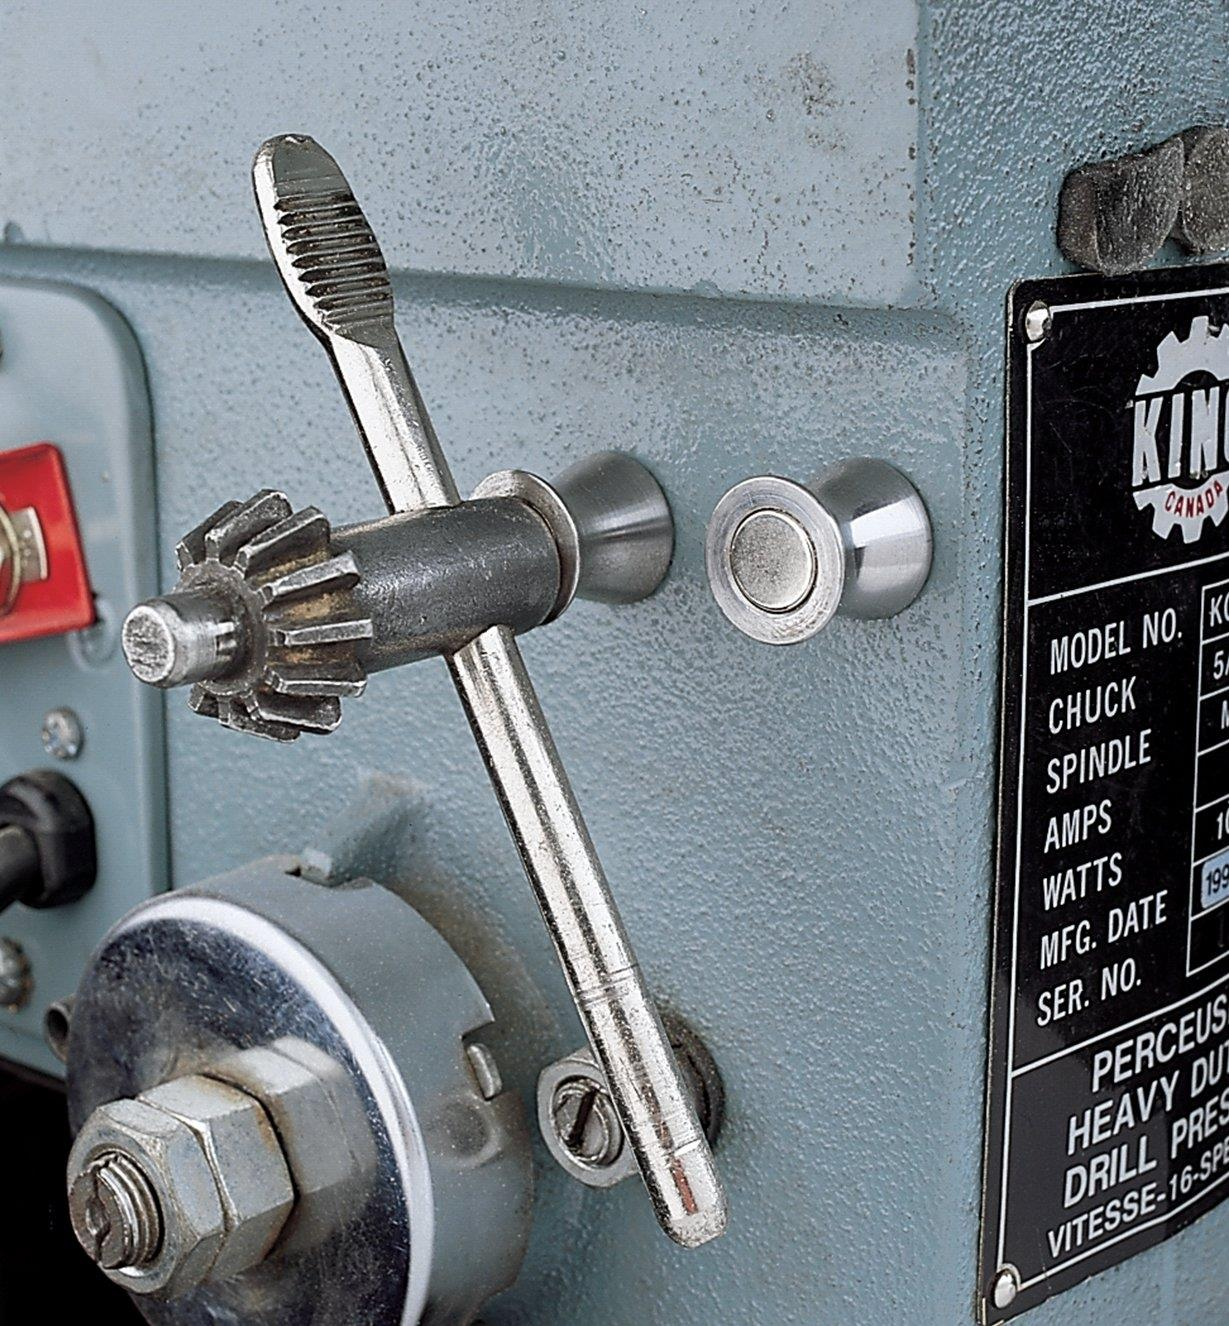 Magnetic Tool Holder holding a chuck key on a drill press